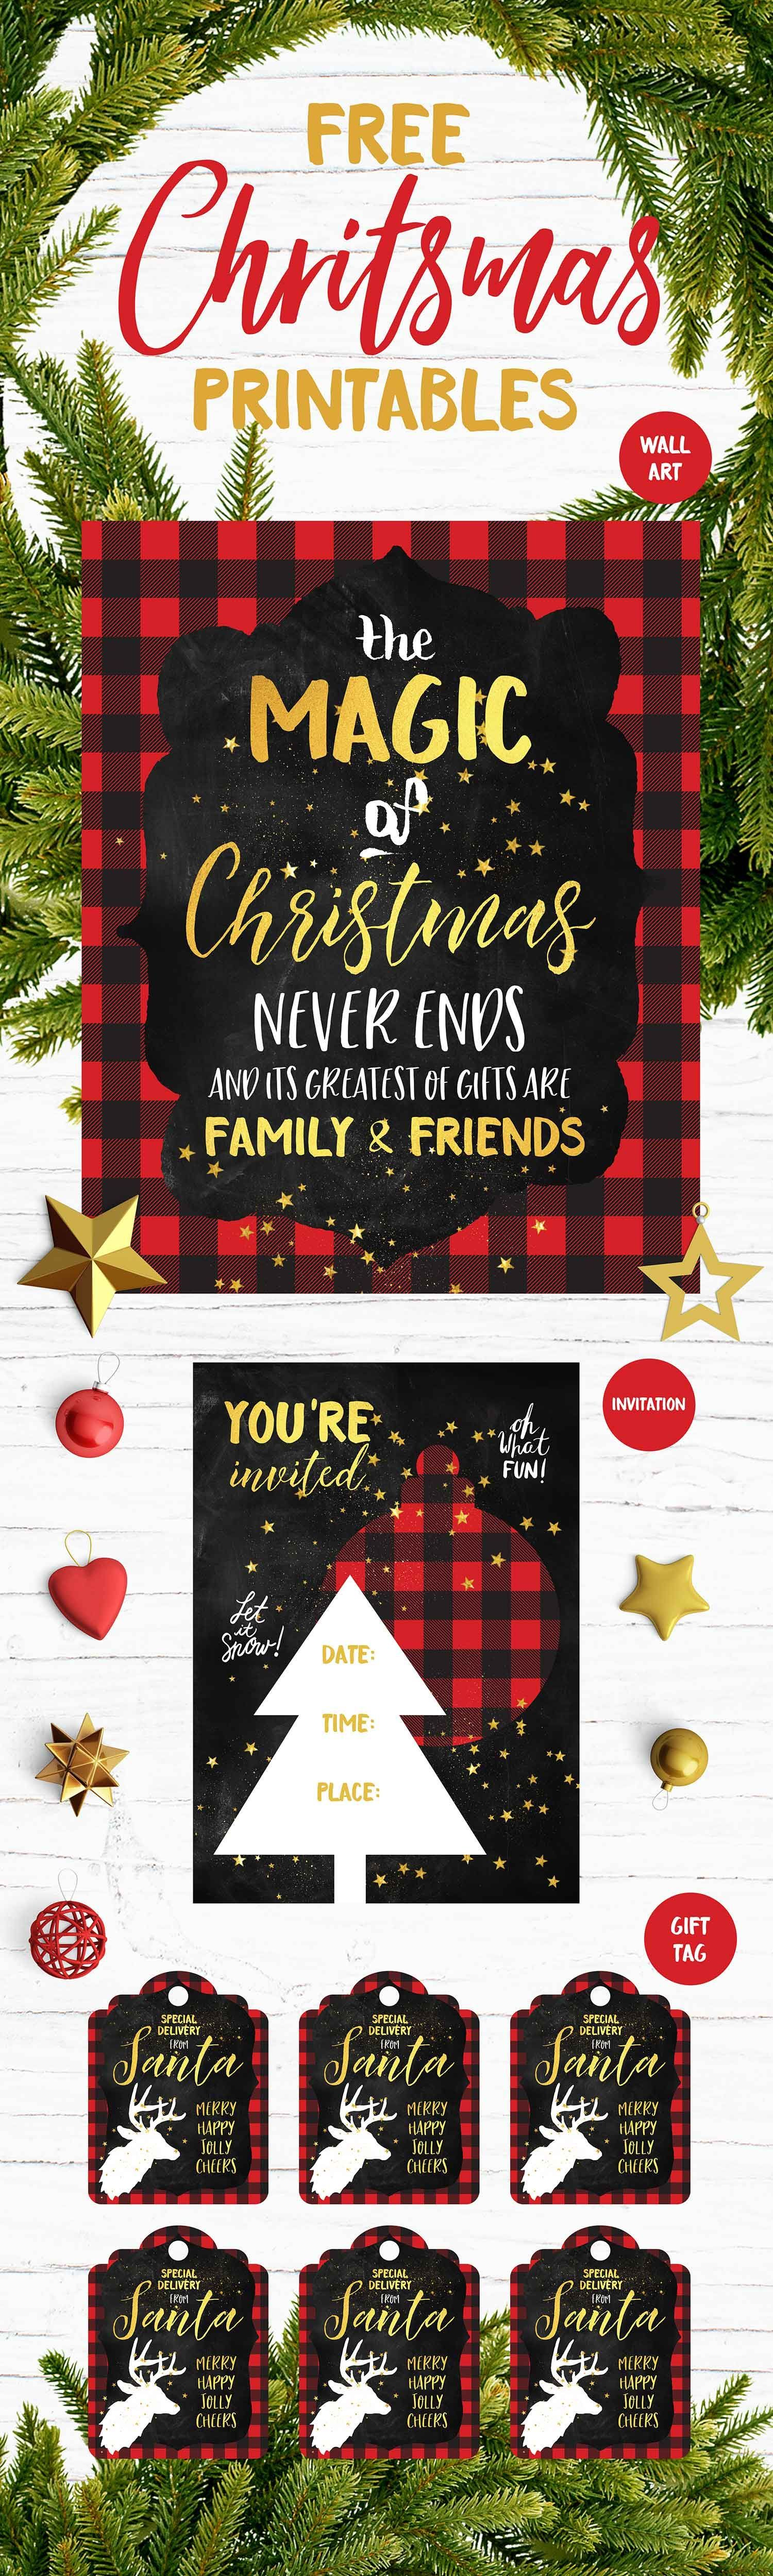 Free Xmas Invitations Alluring Christmas Printables Set  Includes Free Holiday Wall Art Party .